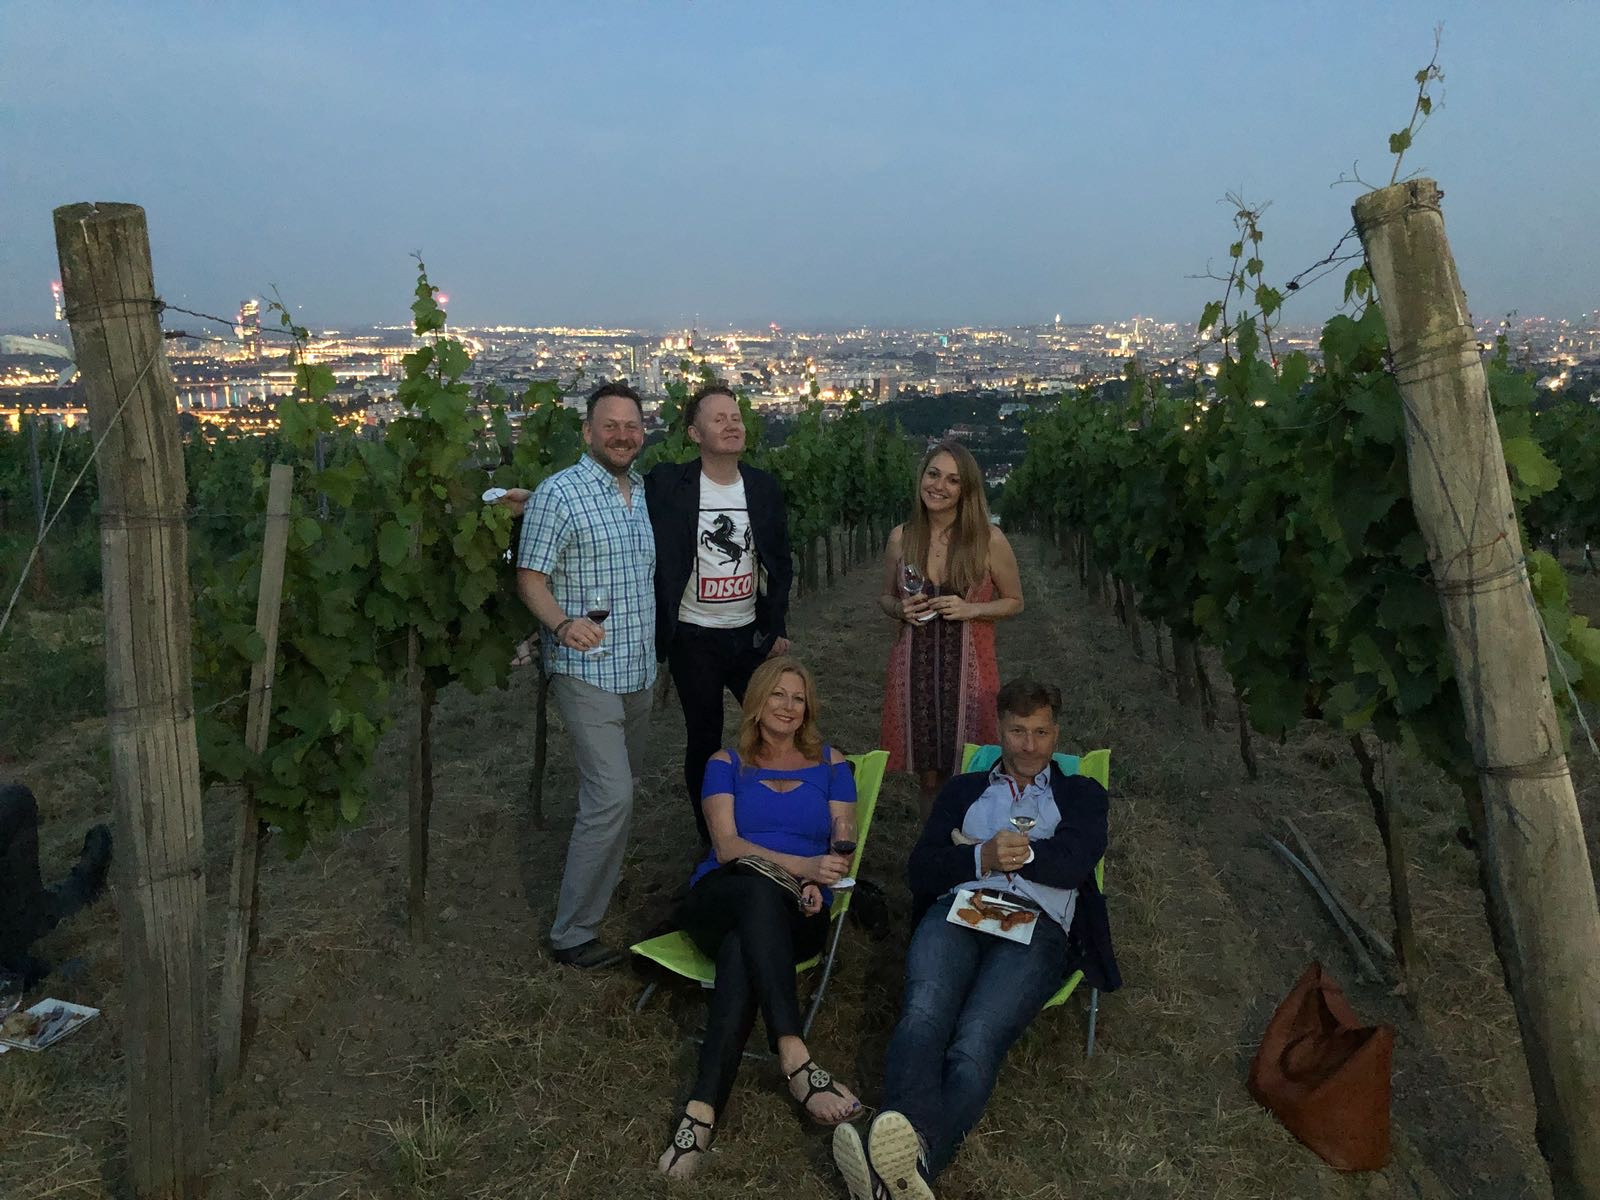 Most of our little crew up on the hillsides overlooking Vienna as part of the Nussberg vineyard party.